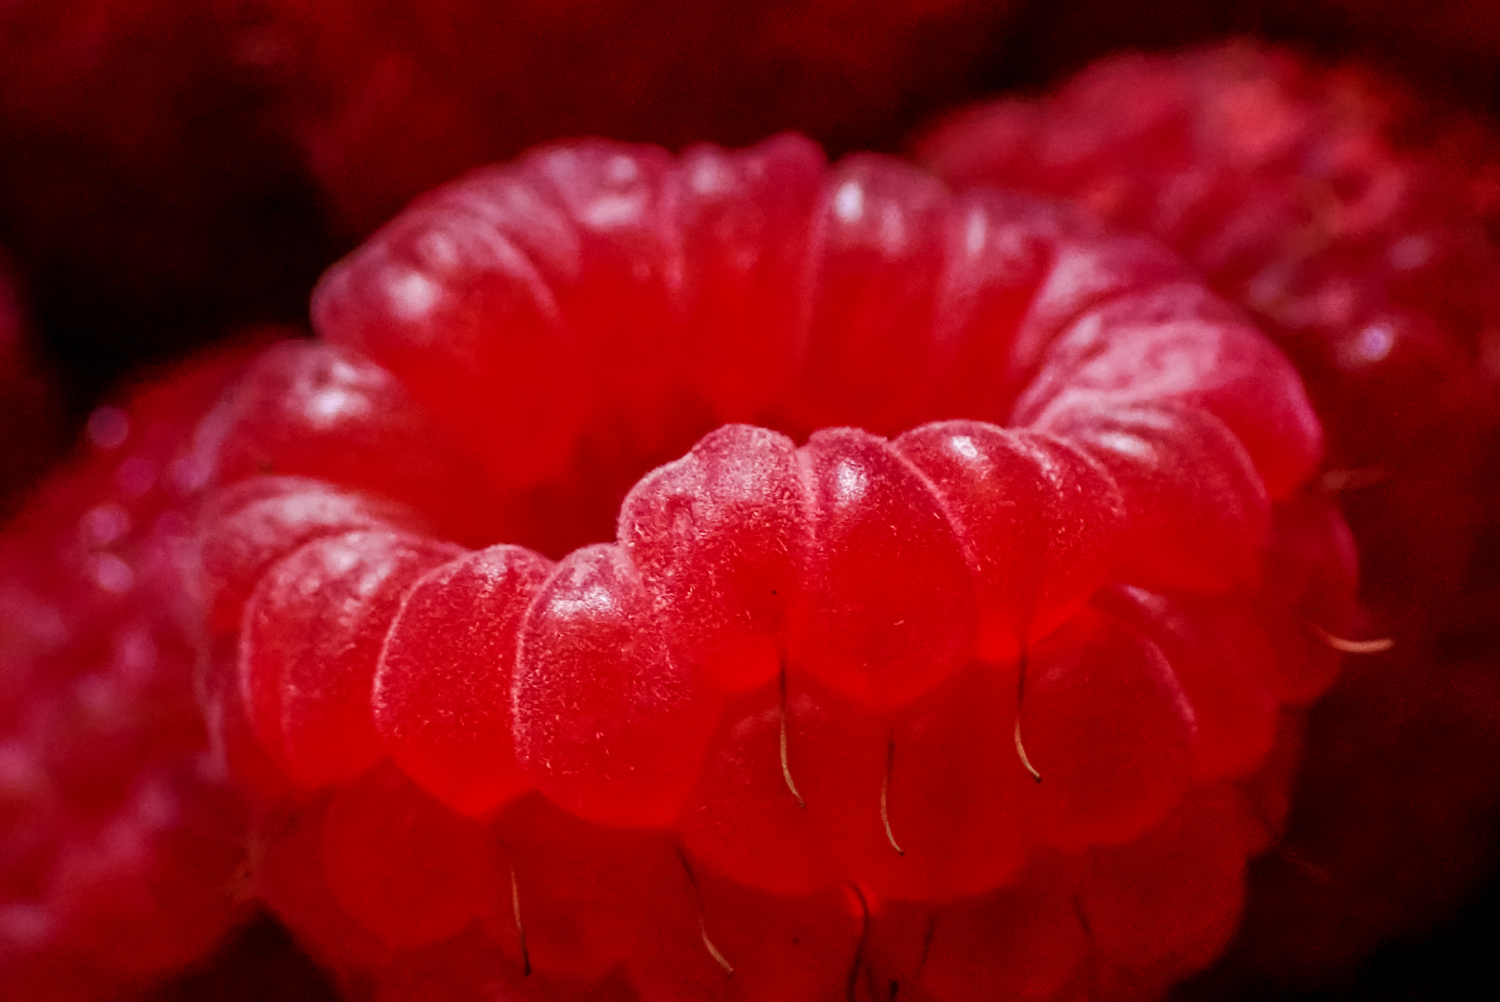 Berry macro photography